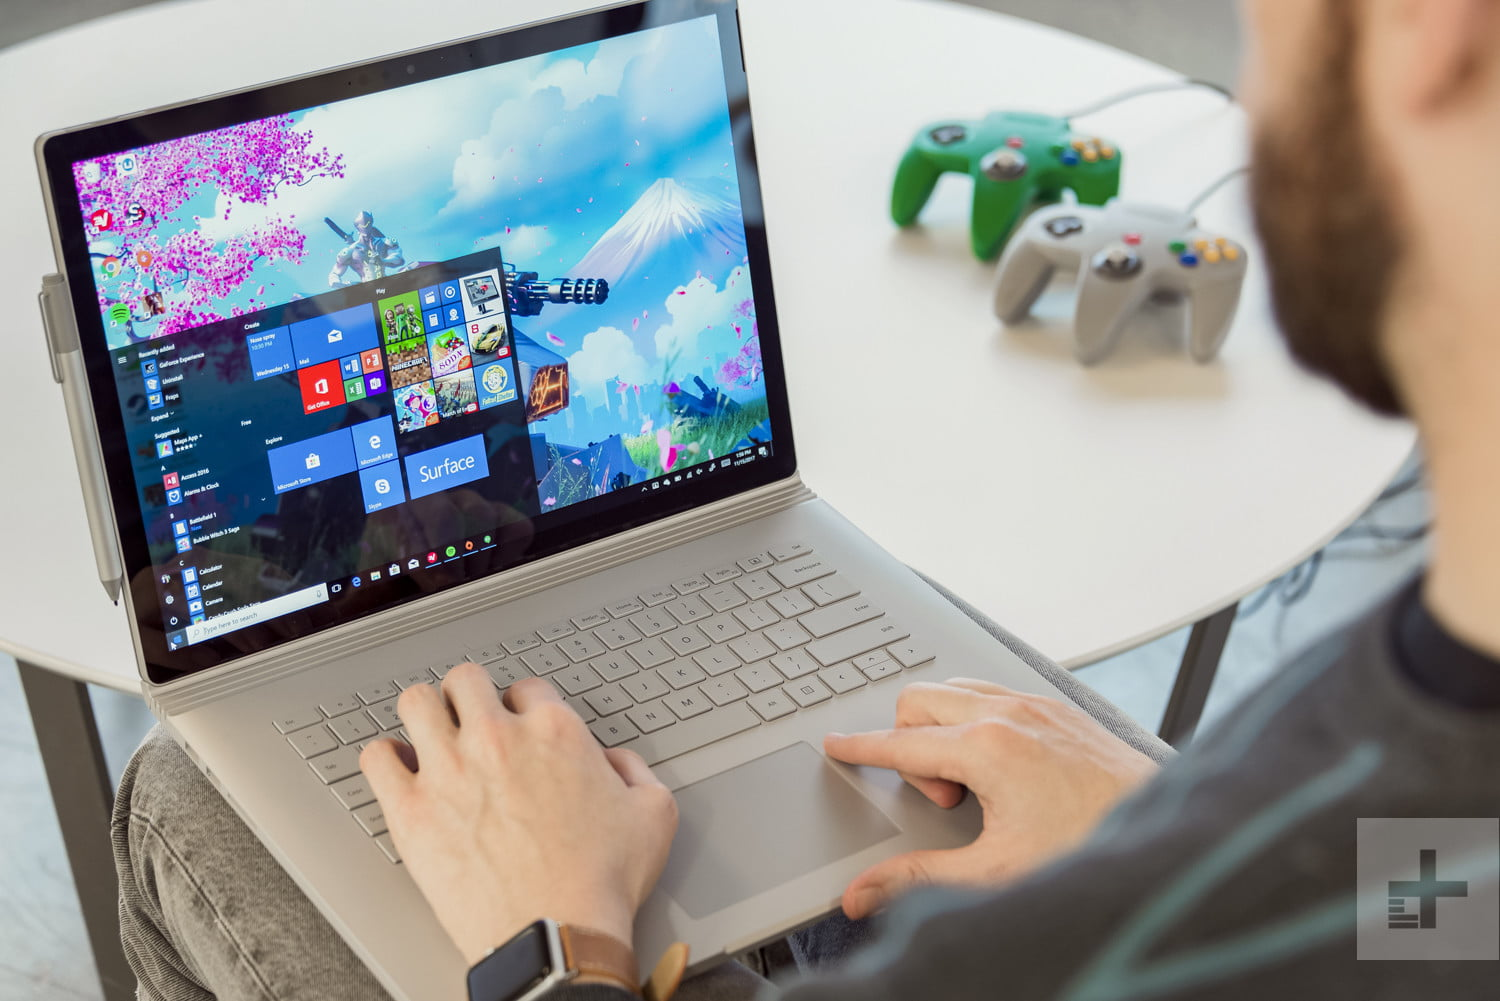 b09e1d2a9718 Microsoft Surface Book 2 15 Review: Worth Every Penny | Digital Trends